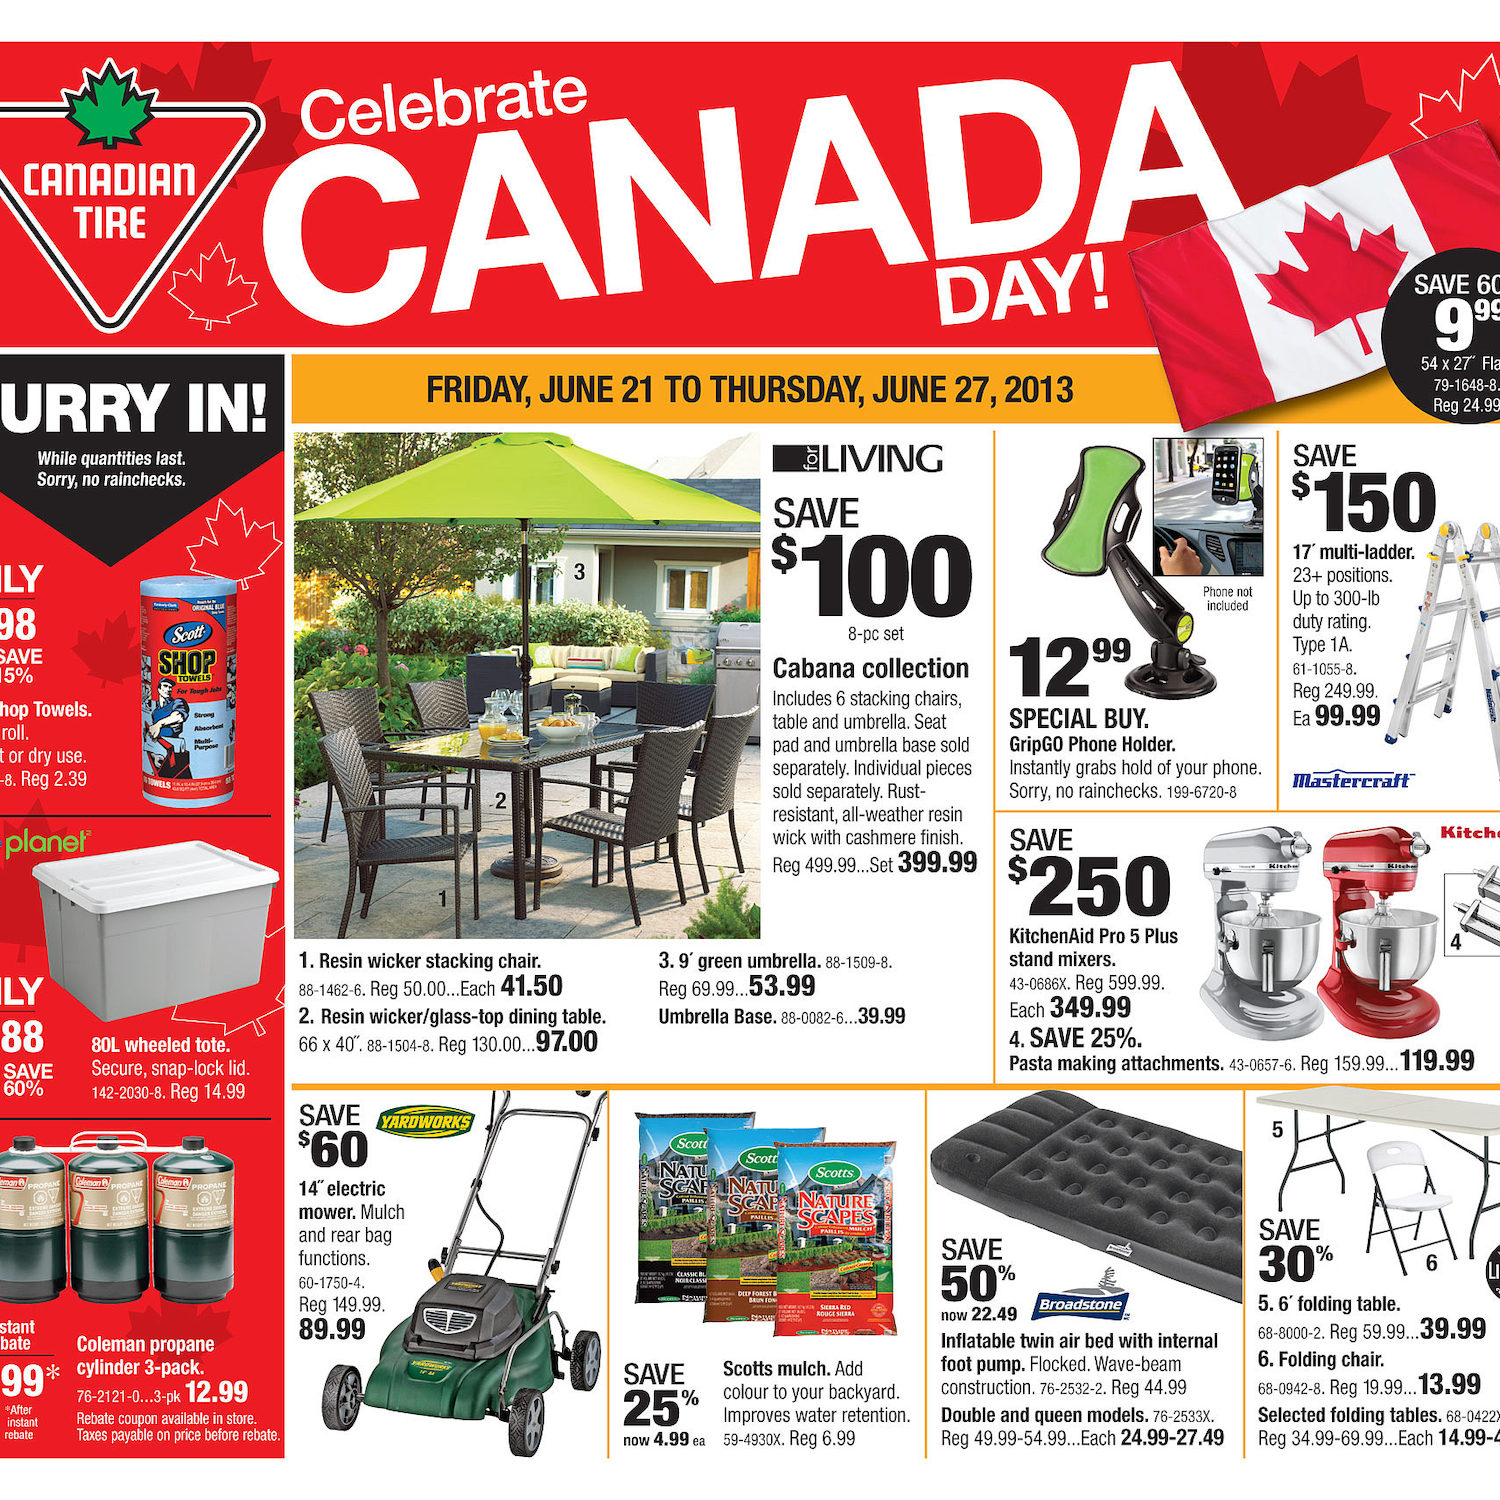 Canadian Tire Weekly Flyer - Weekly Flyer - Jun 20 u2013 27 - RedFlagDeals.com  sc 1 st  RedFlagDeals.com & Canadian Tire Weekly Flyer - Weekly Flyer - Jun 20 u2013 27 ...